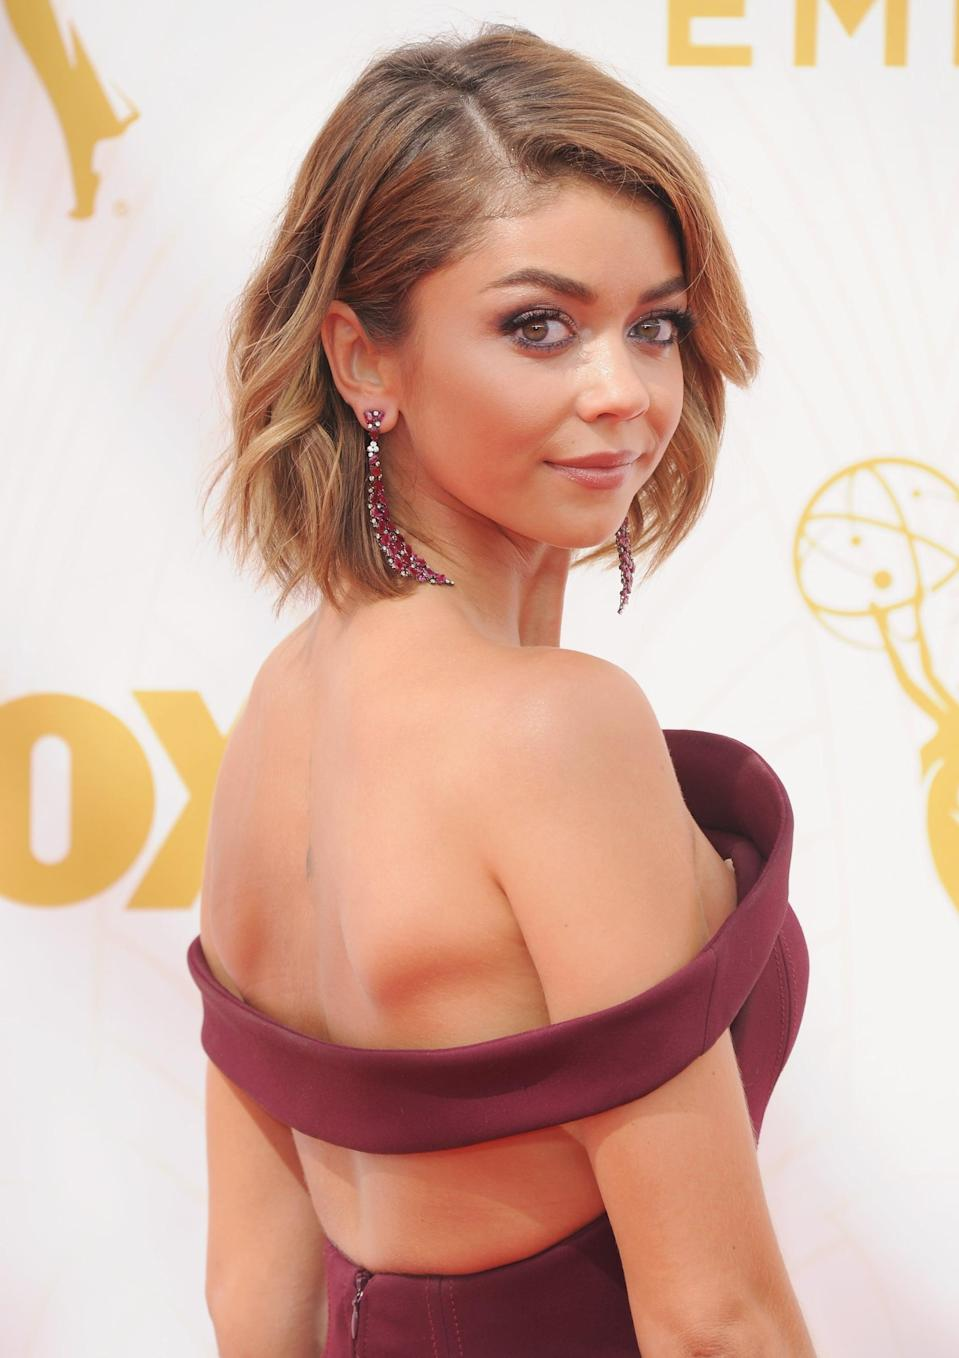 <p>Sarah Hyland's caramel-colored and chin-length bob looked stunning at the Emmys in 2015.</p>